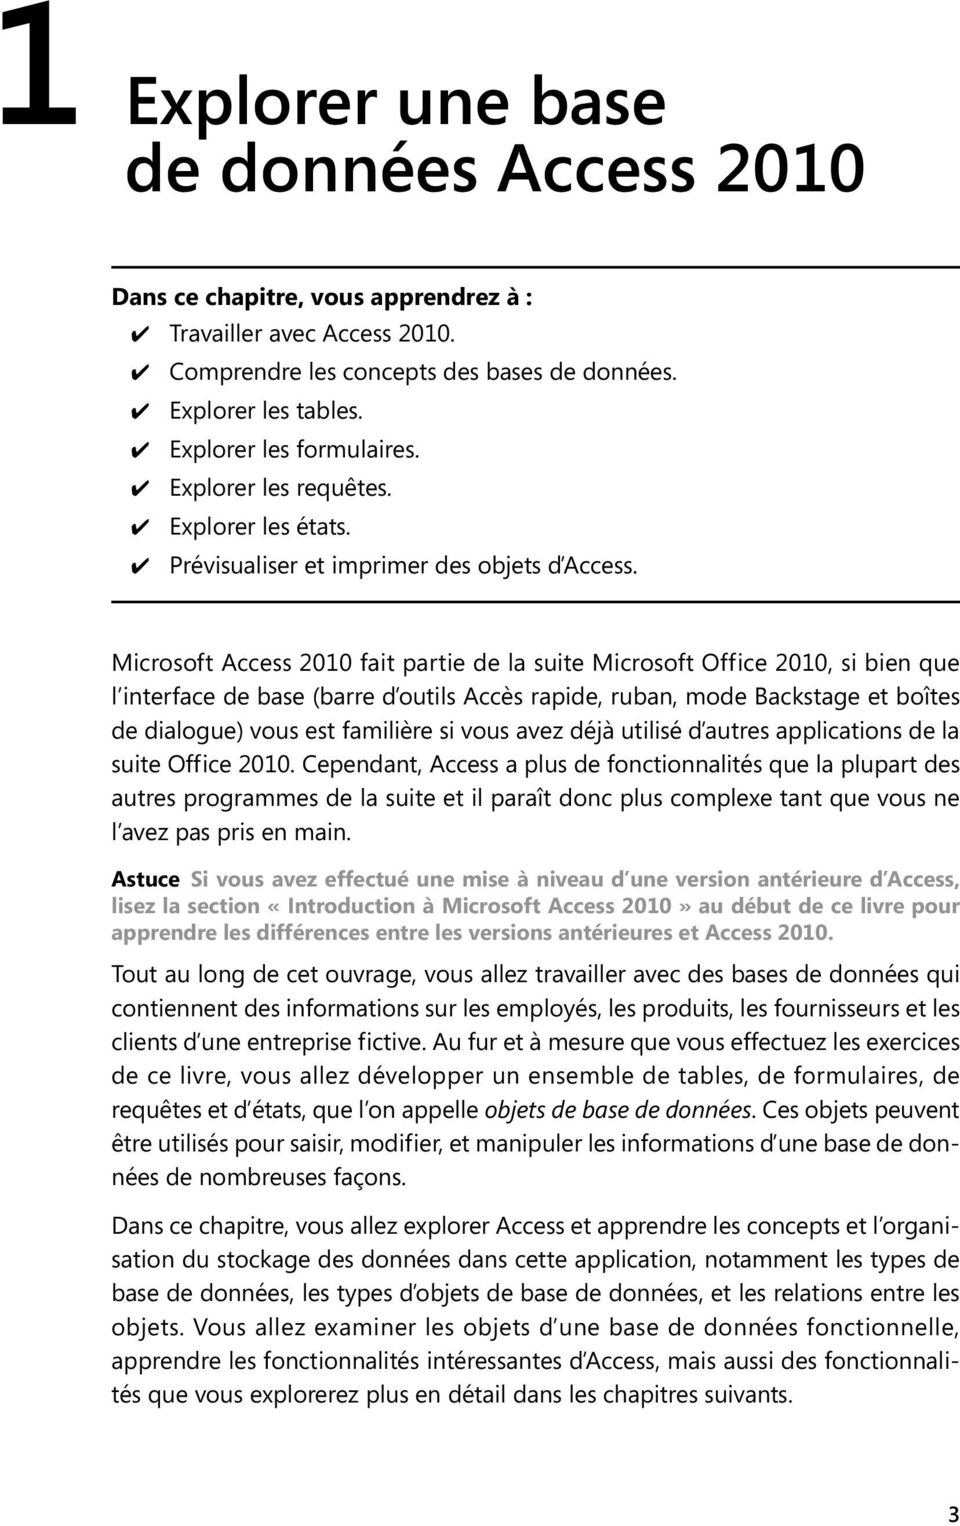 Microsoft Access 2010 fait partie de a suite Microsoft Office 2010, si bien que interface de base (barre d outis Accès rapide, ruban, mode Backstage et boîtes de diaogue) vous est famiière si vous